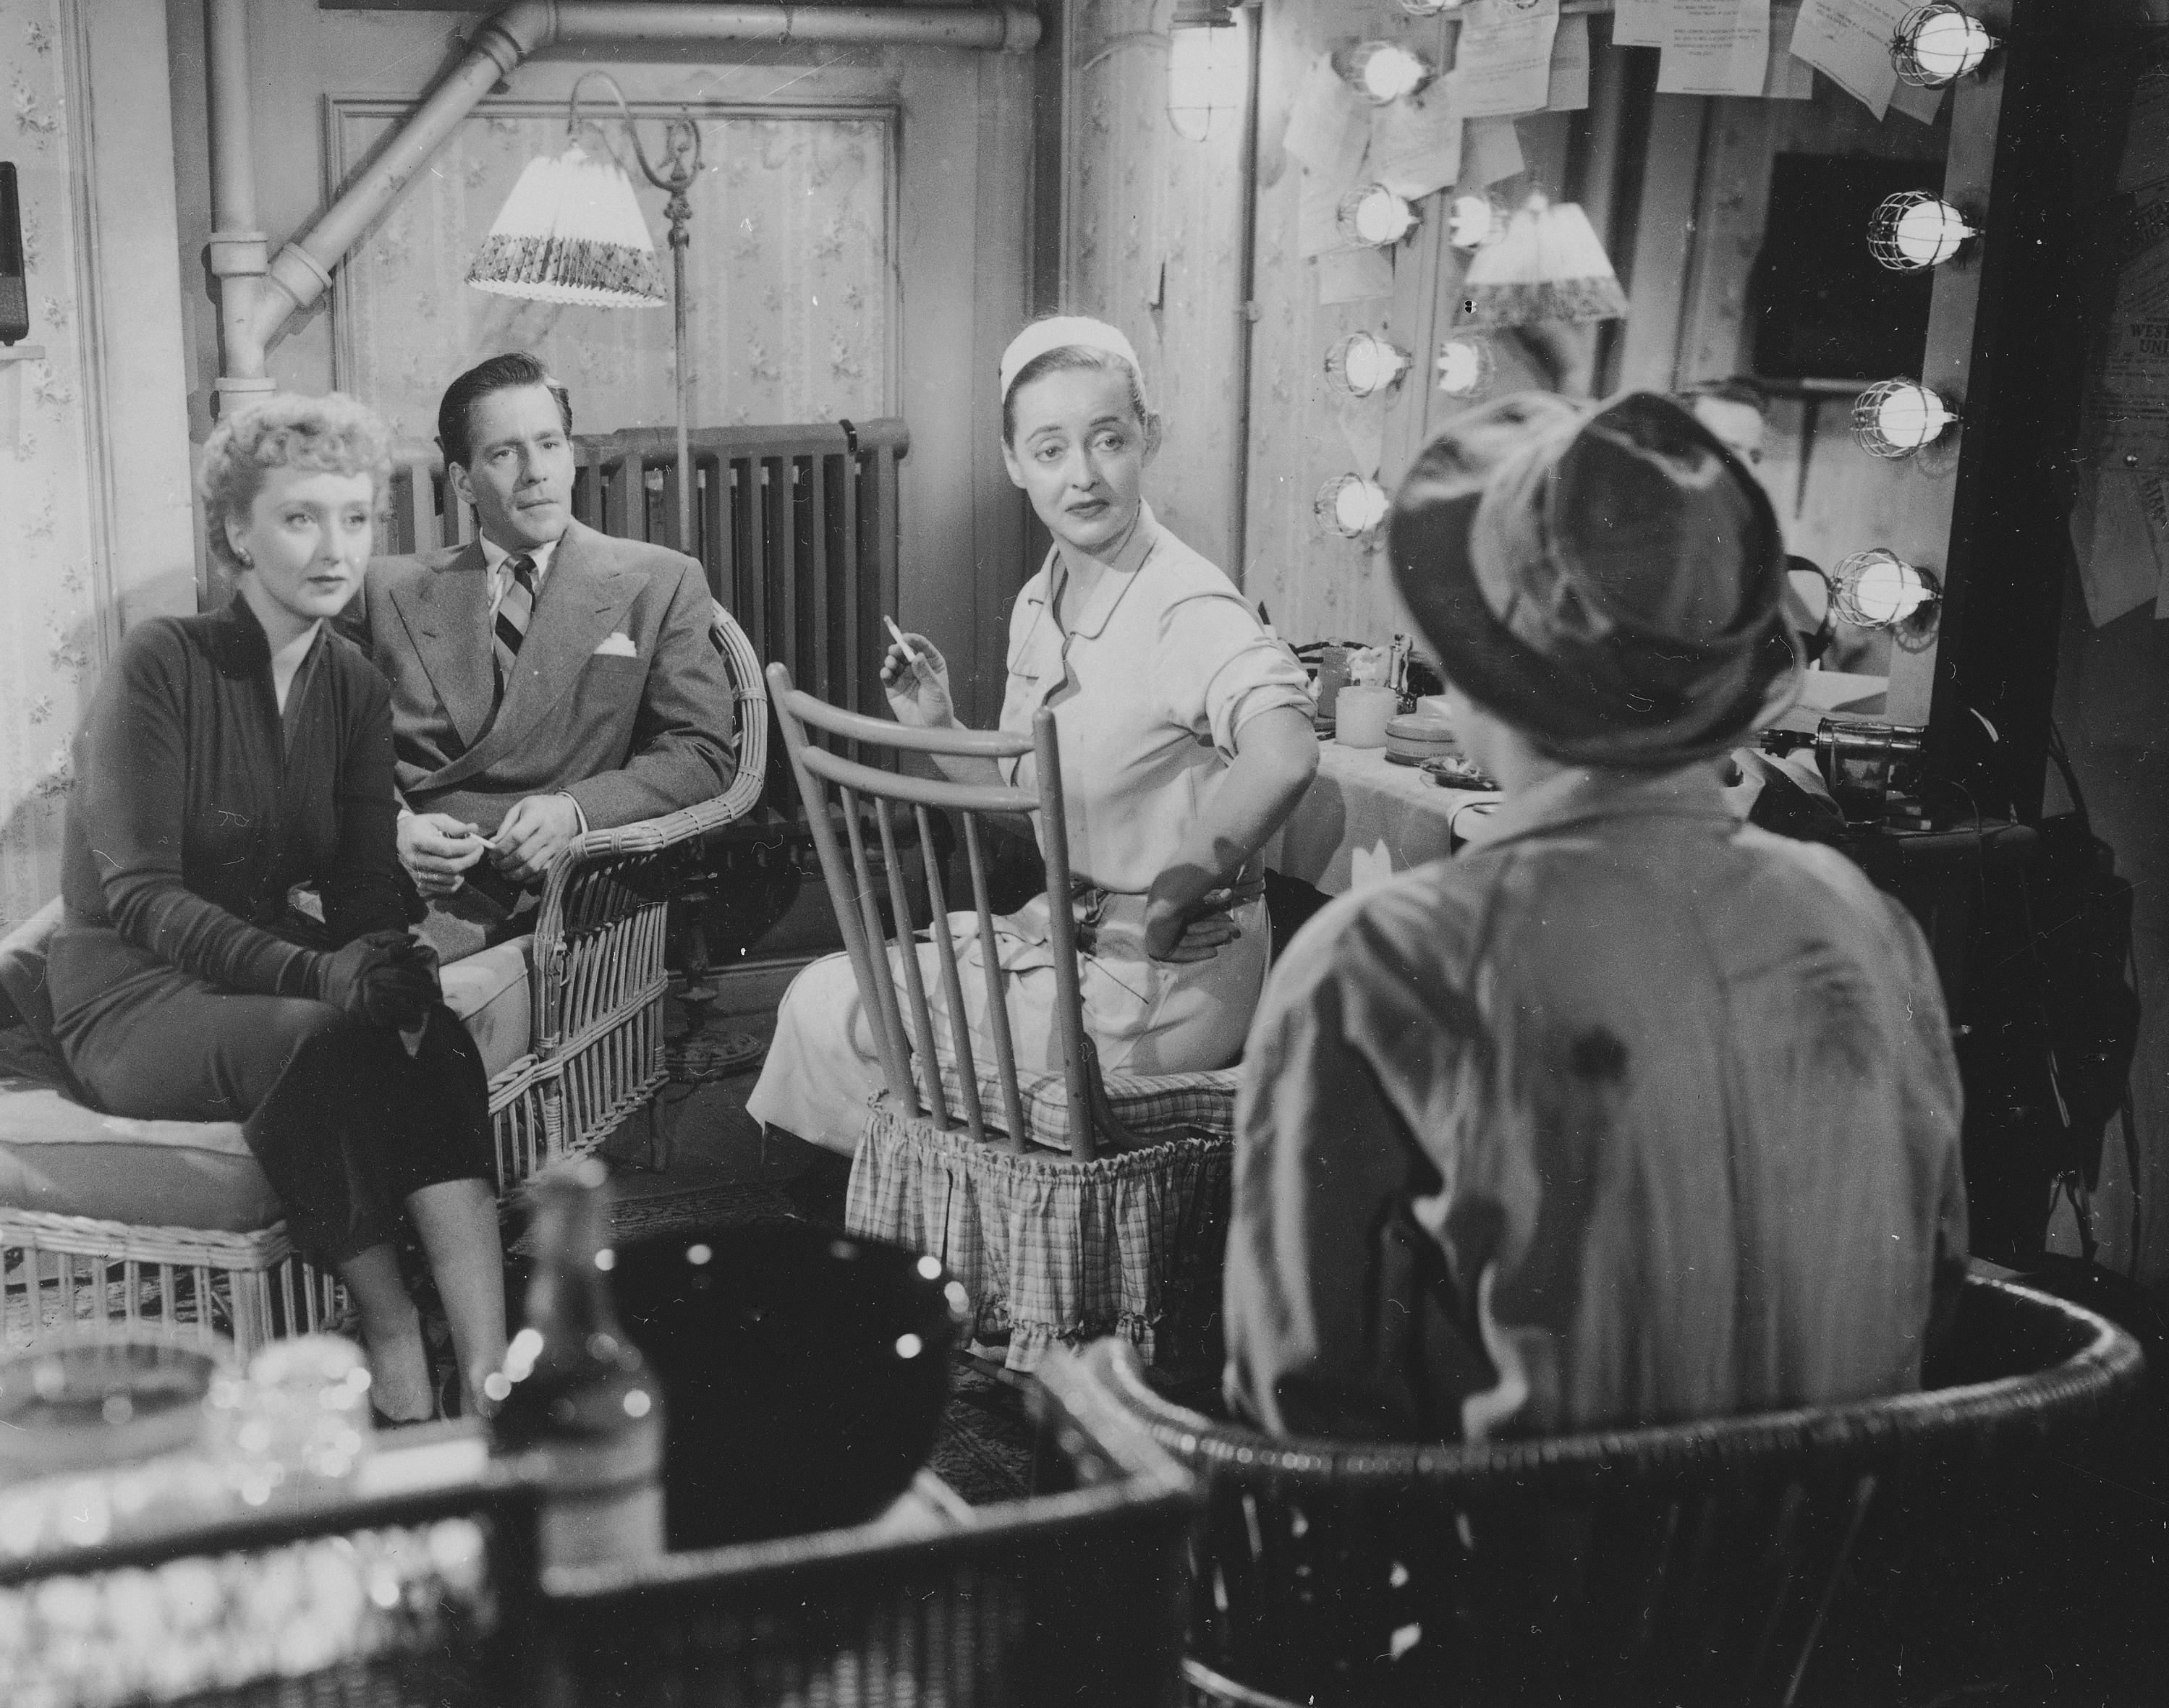 Holm played Bette Davis' best friend in the 1950 movie, All About Eve.